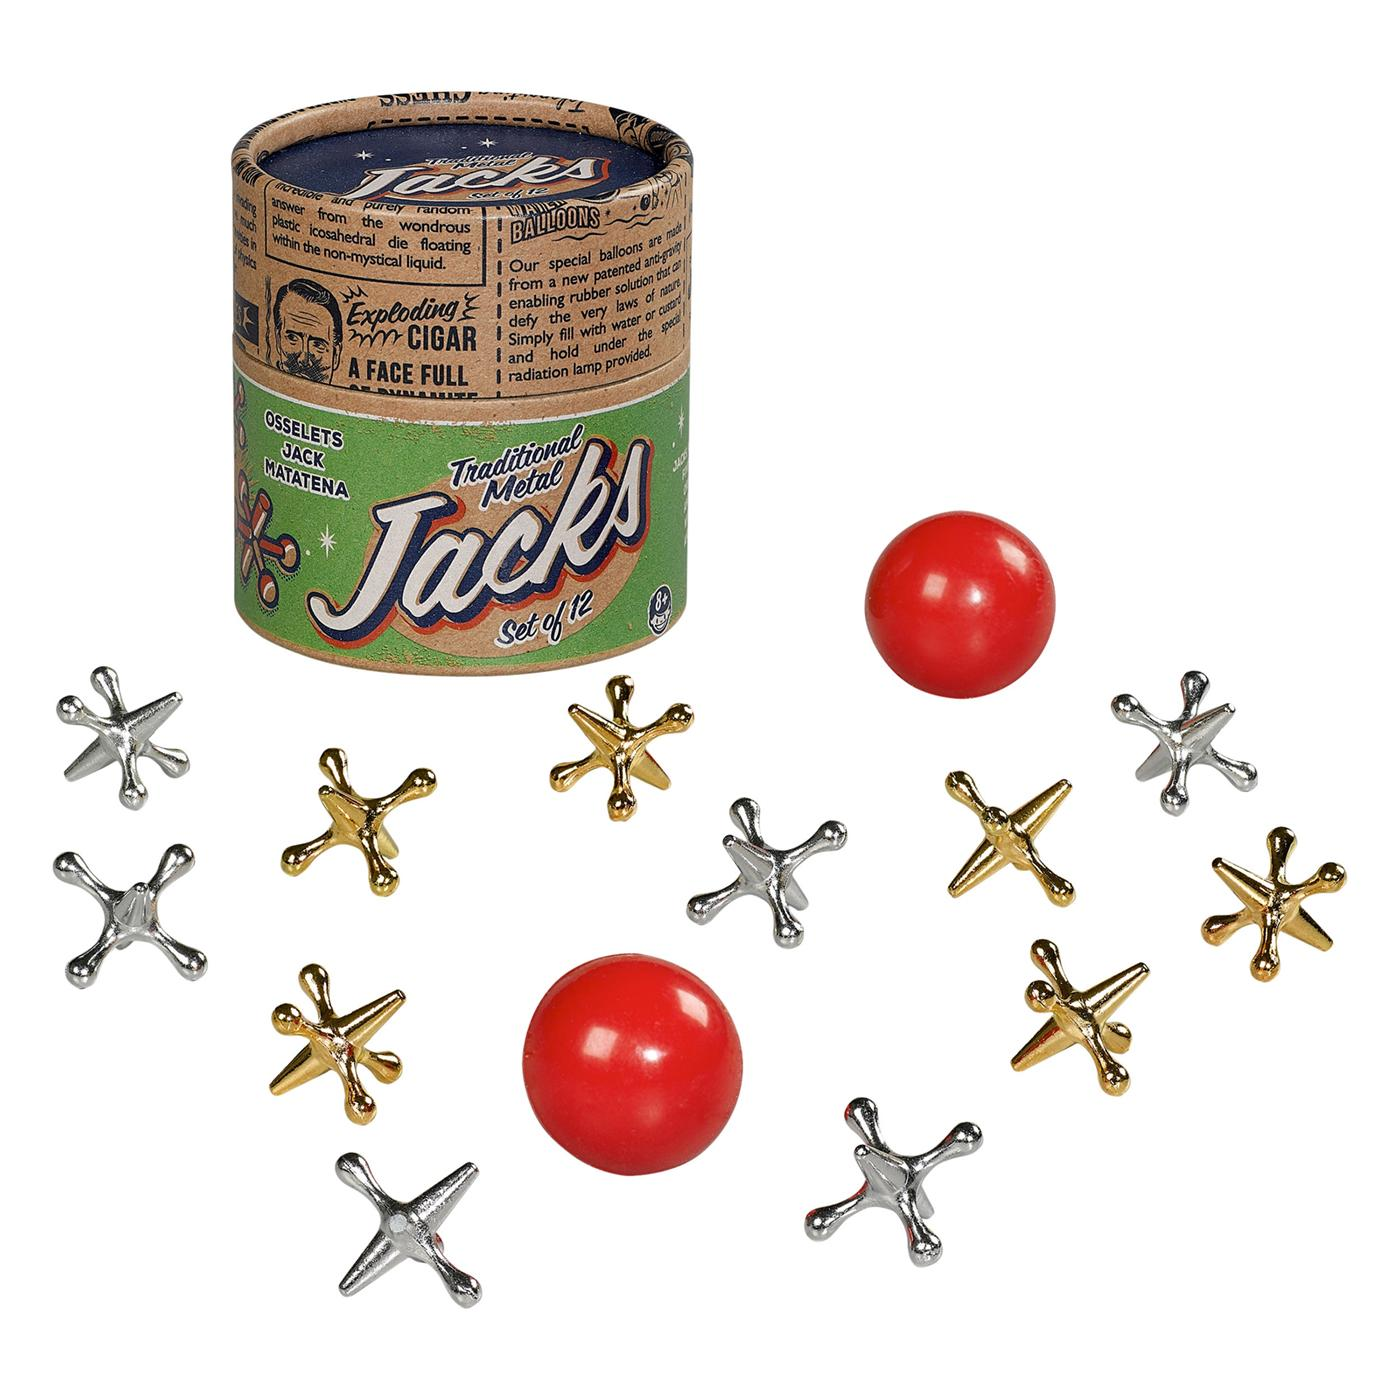 RIDLEY'S Retro Vintage Metal Jacks Novelty Game